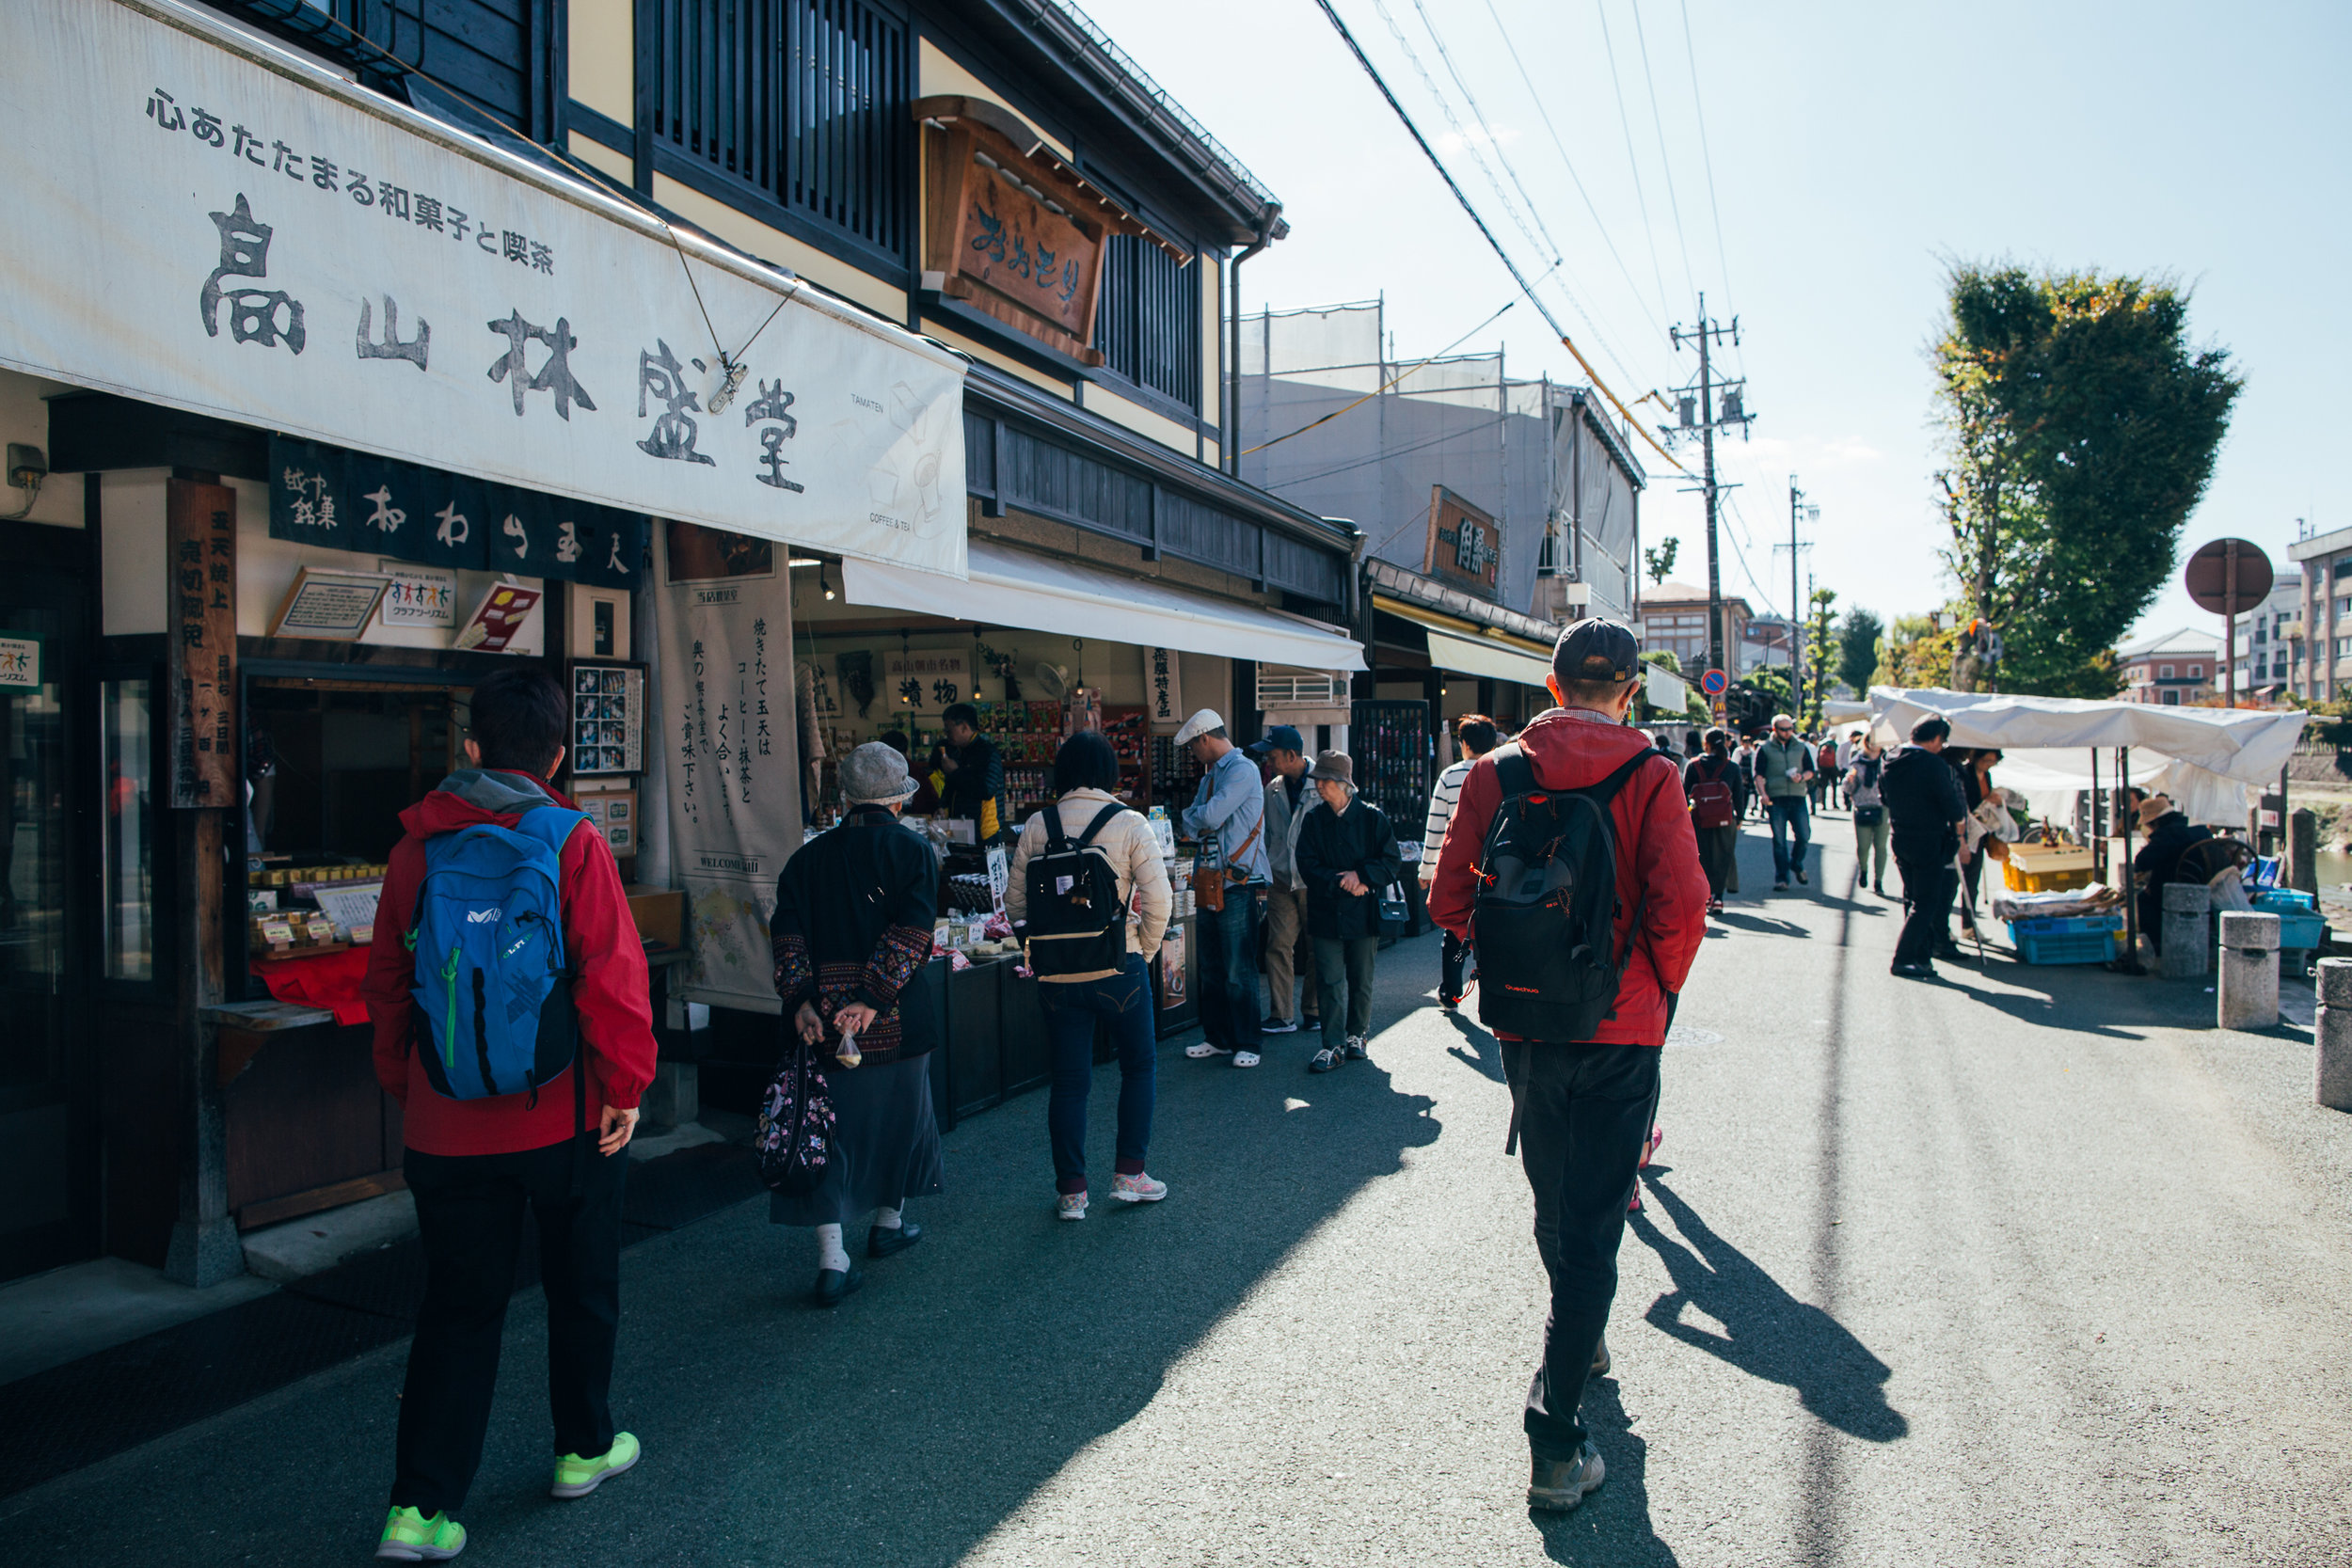 The Miyagawa morning market is basically a single riverside street that runs about a few hundred metres. The other morning market, Jinya-mae market, is located in the parking lot in front of the Takayama Jinya (the old government building, now a museum).